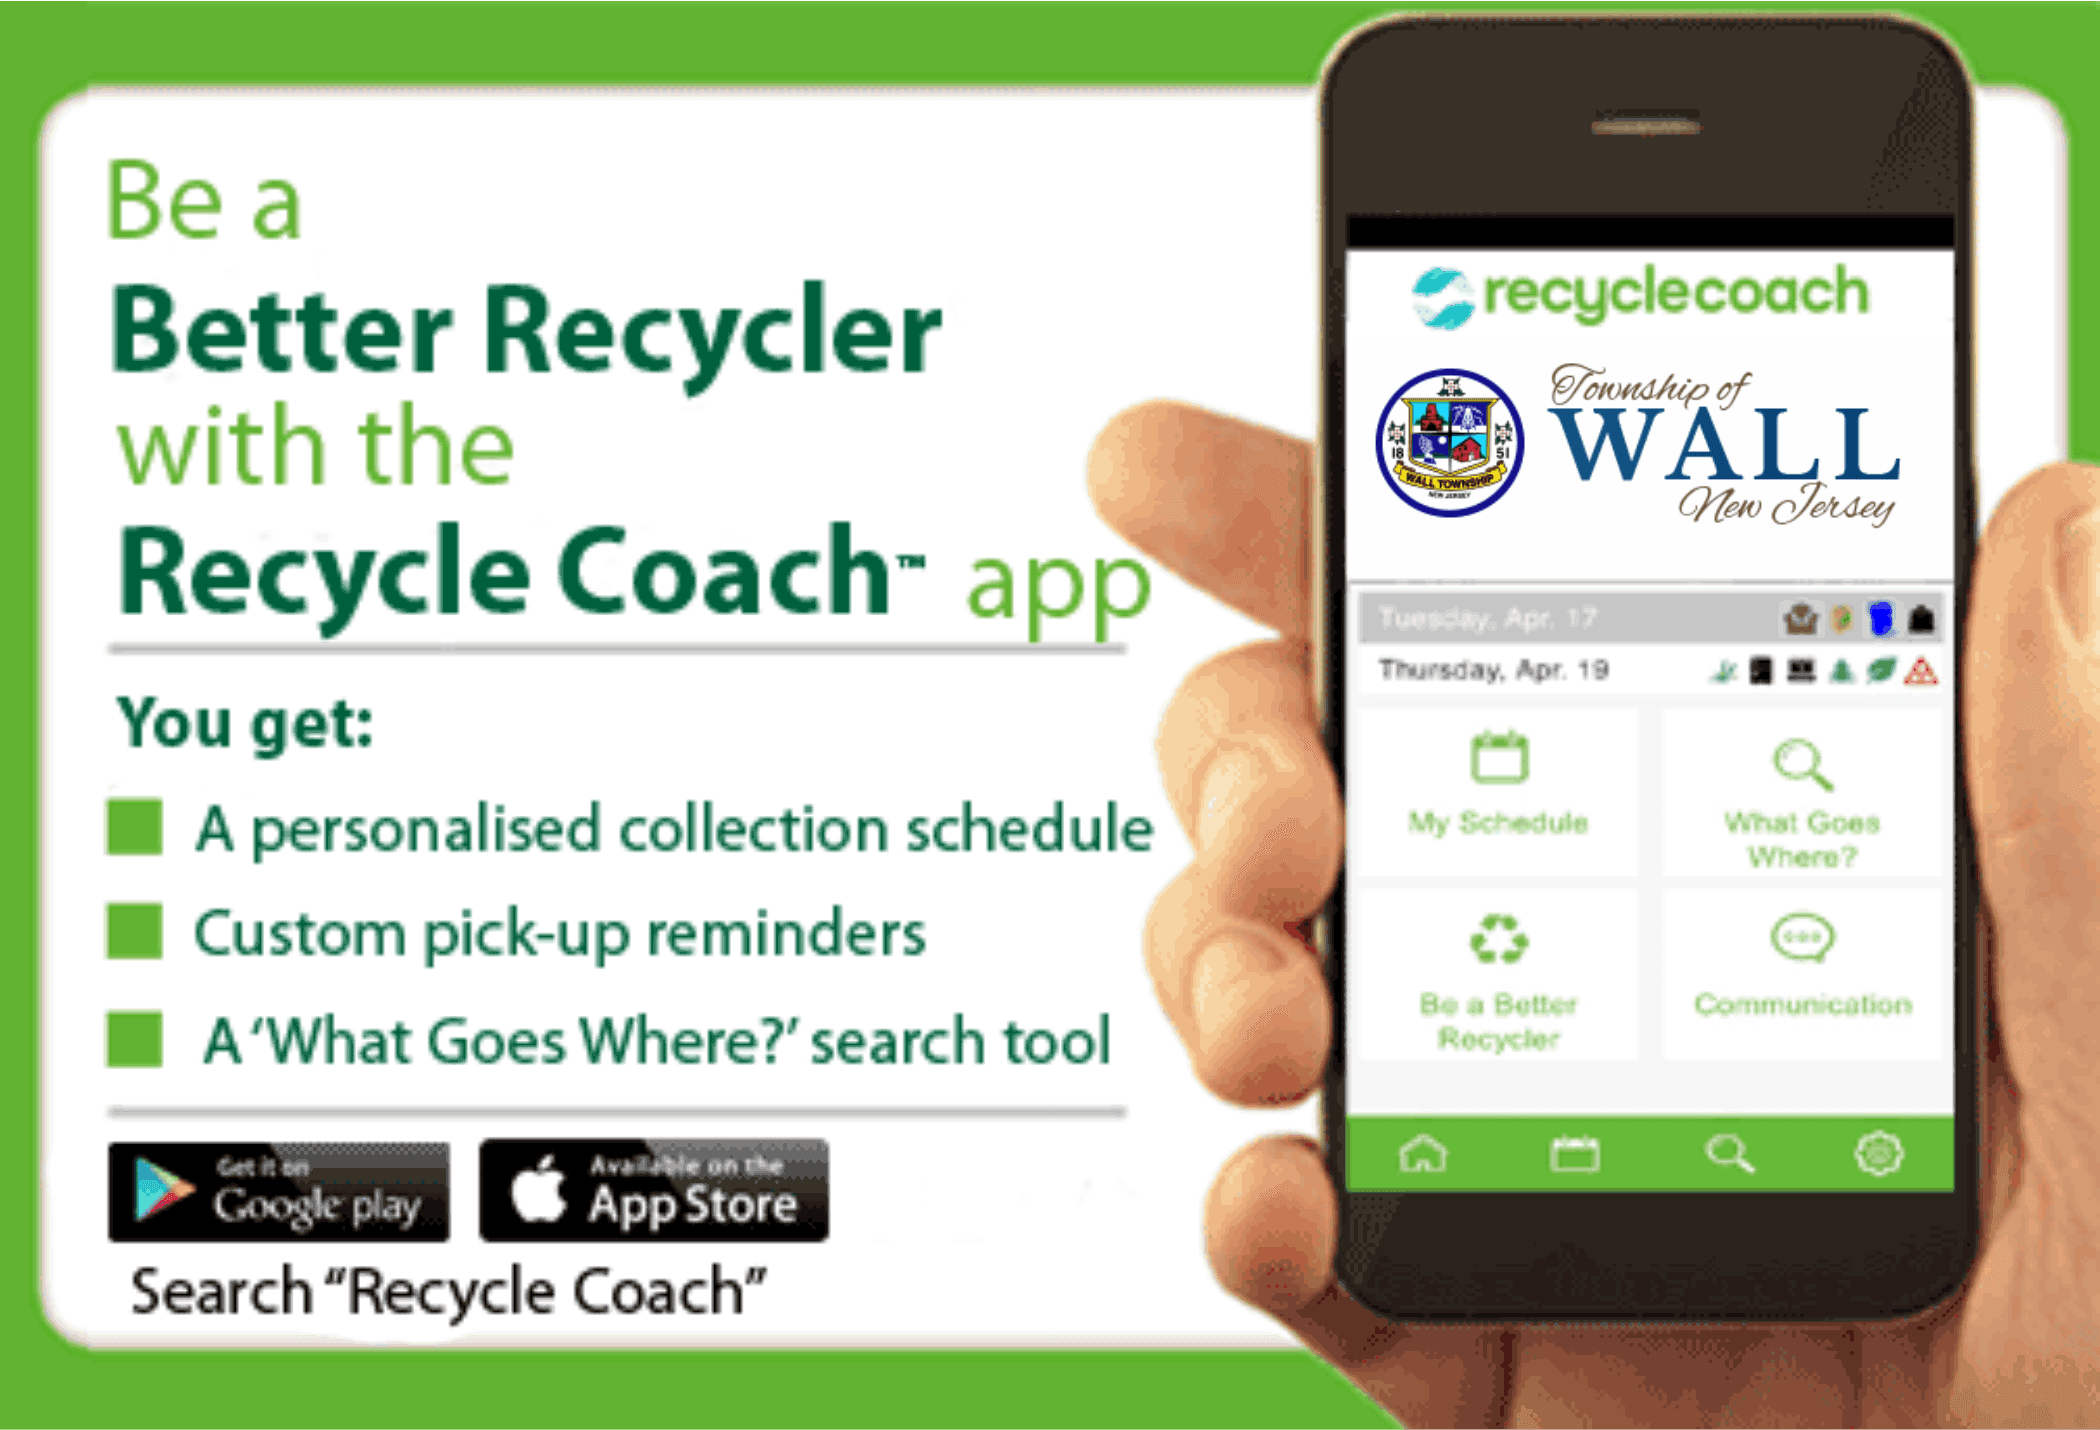 Wall TWP Recycle Coach Flyer